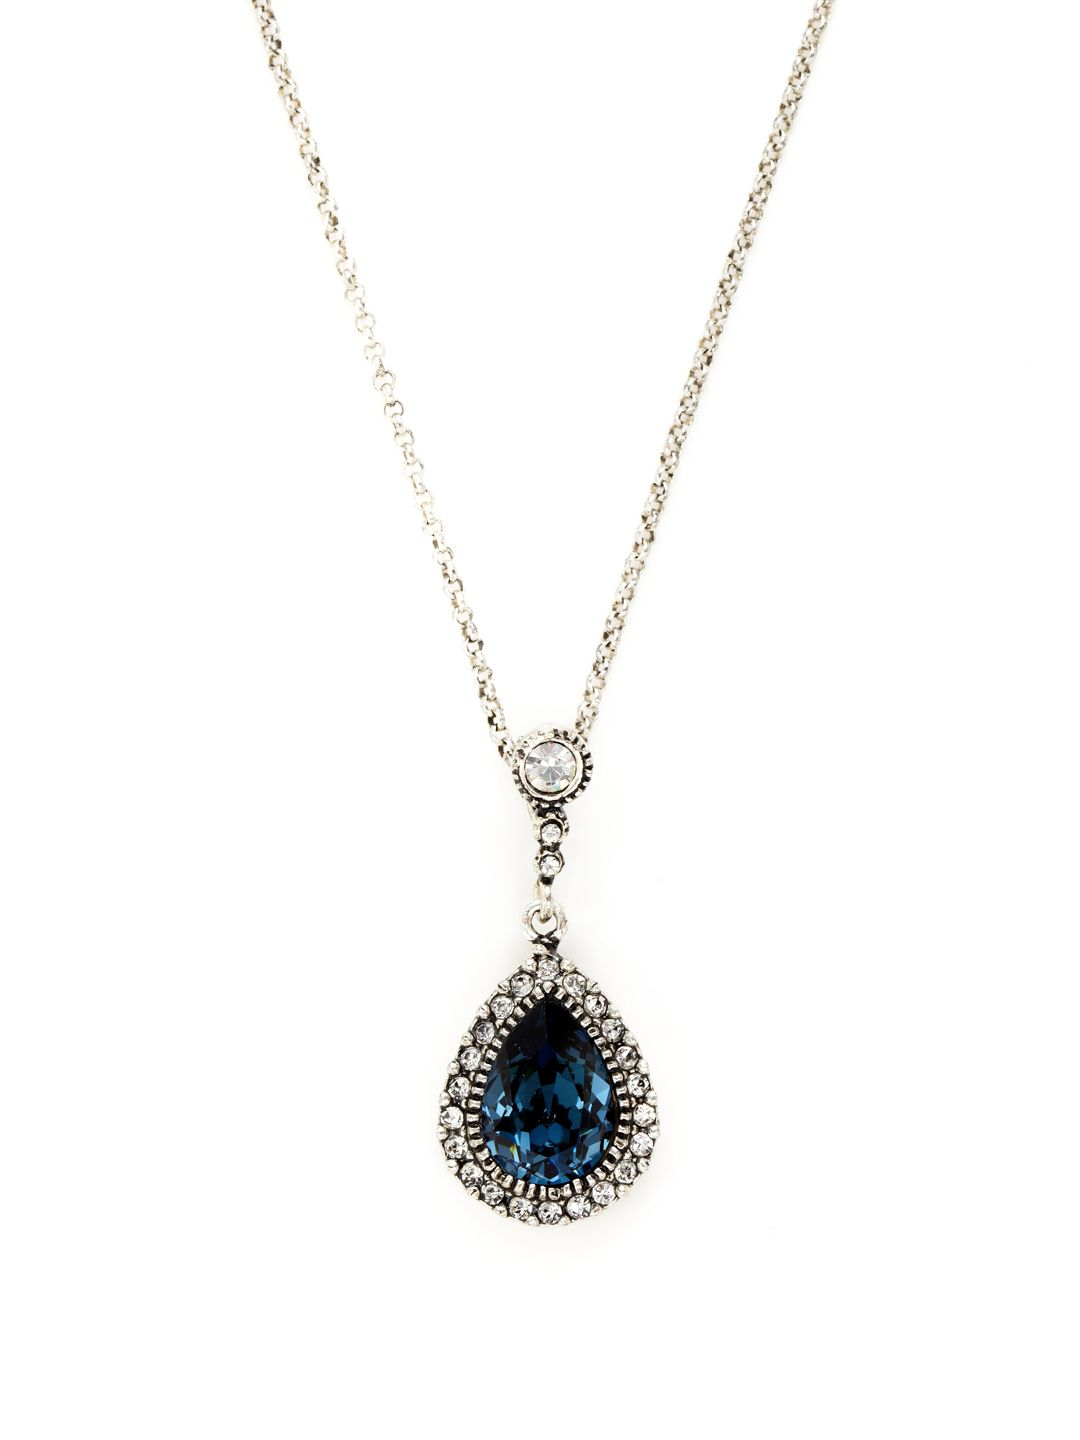 Blue & Clear Crystal Teardrop Pendant Necklace by Azaara Vintage at Gilt